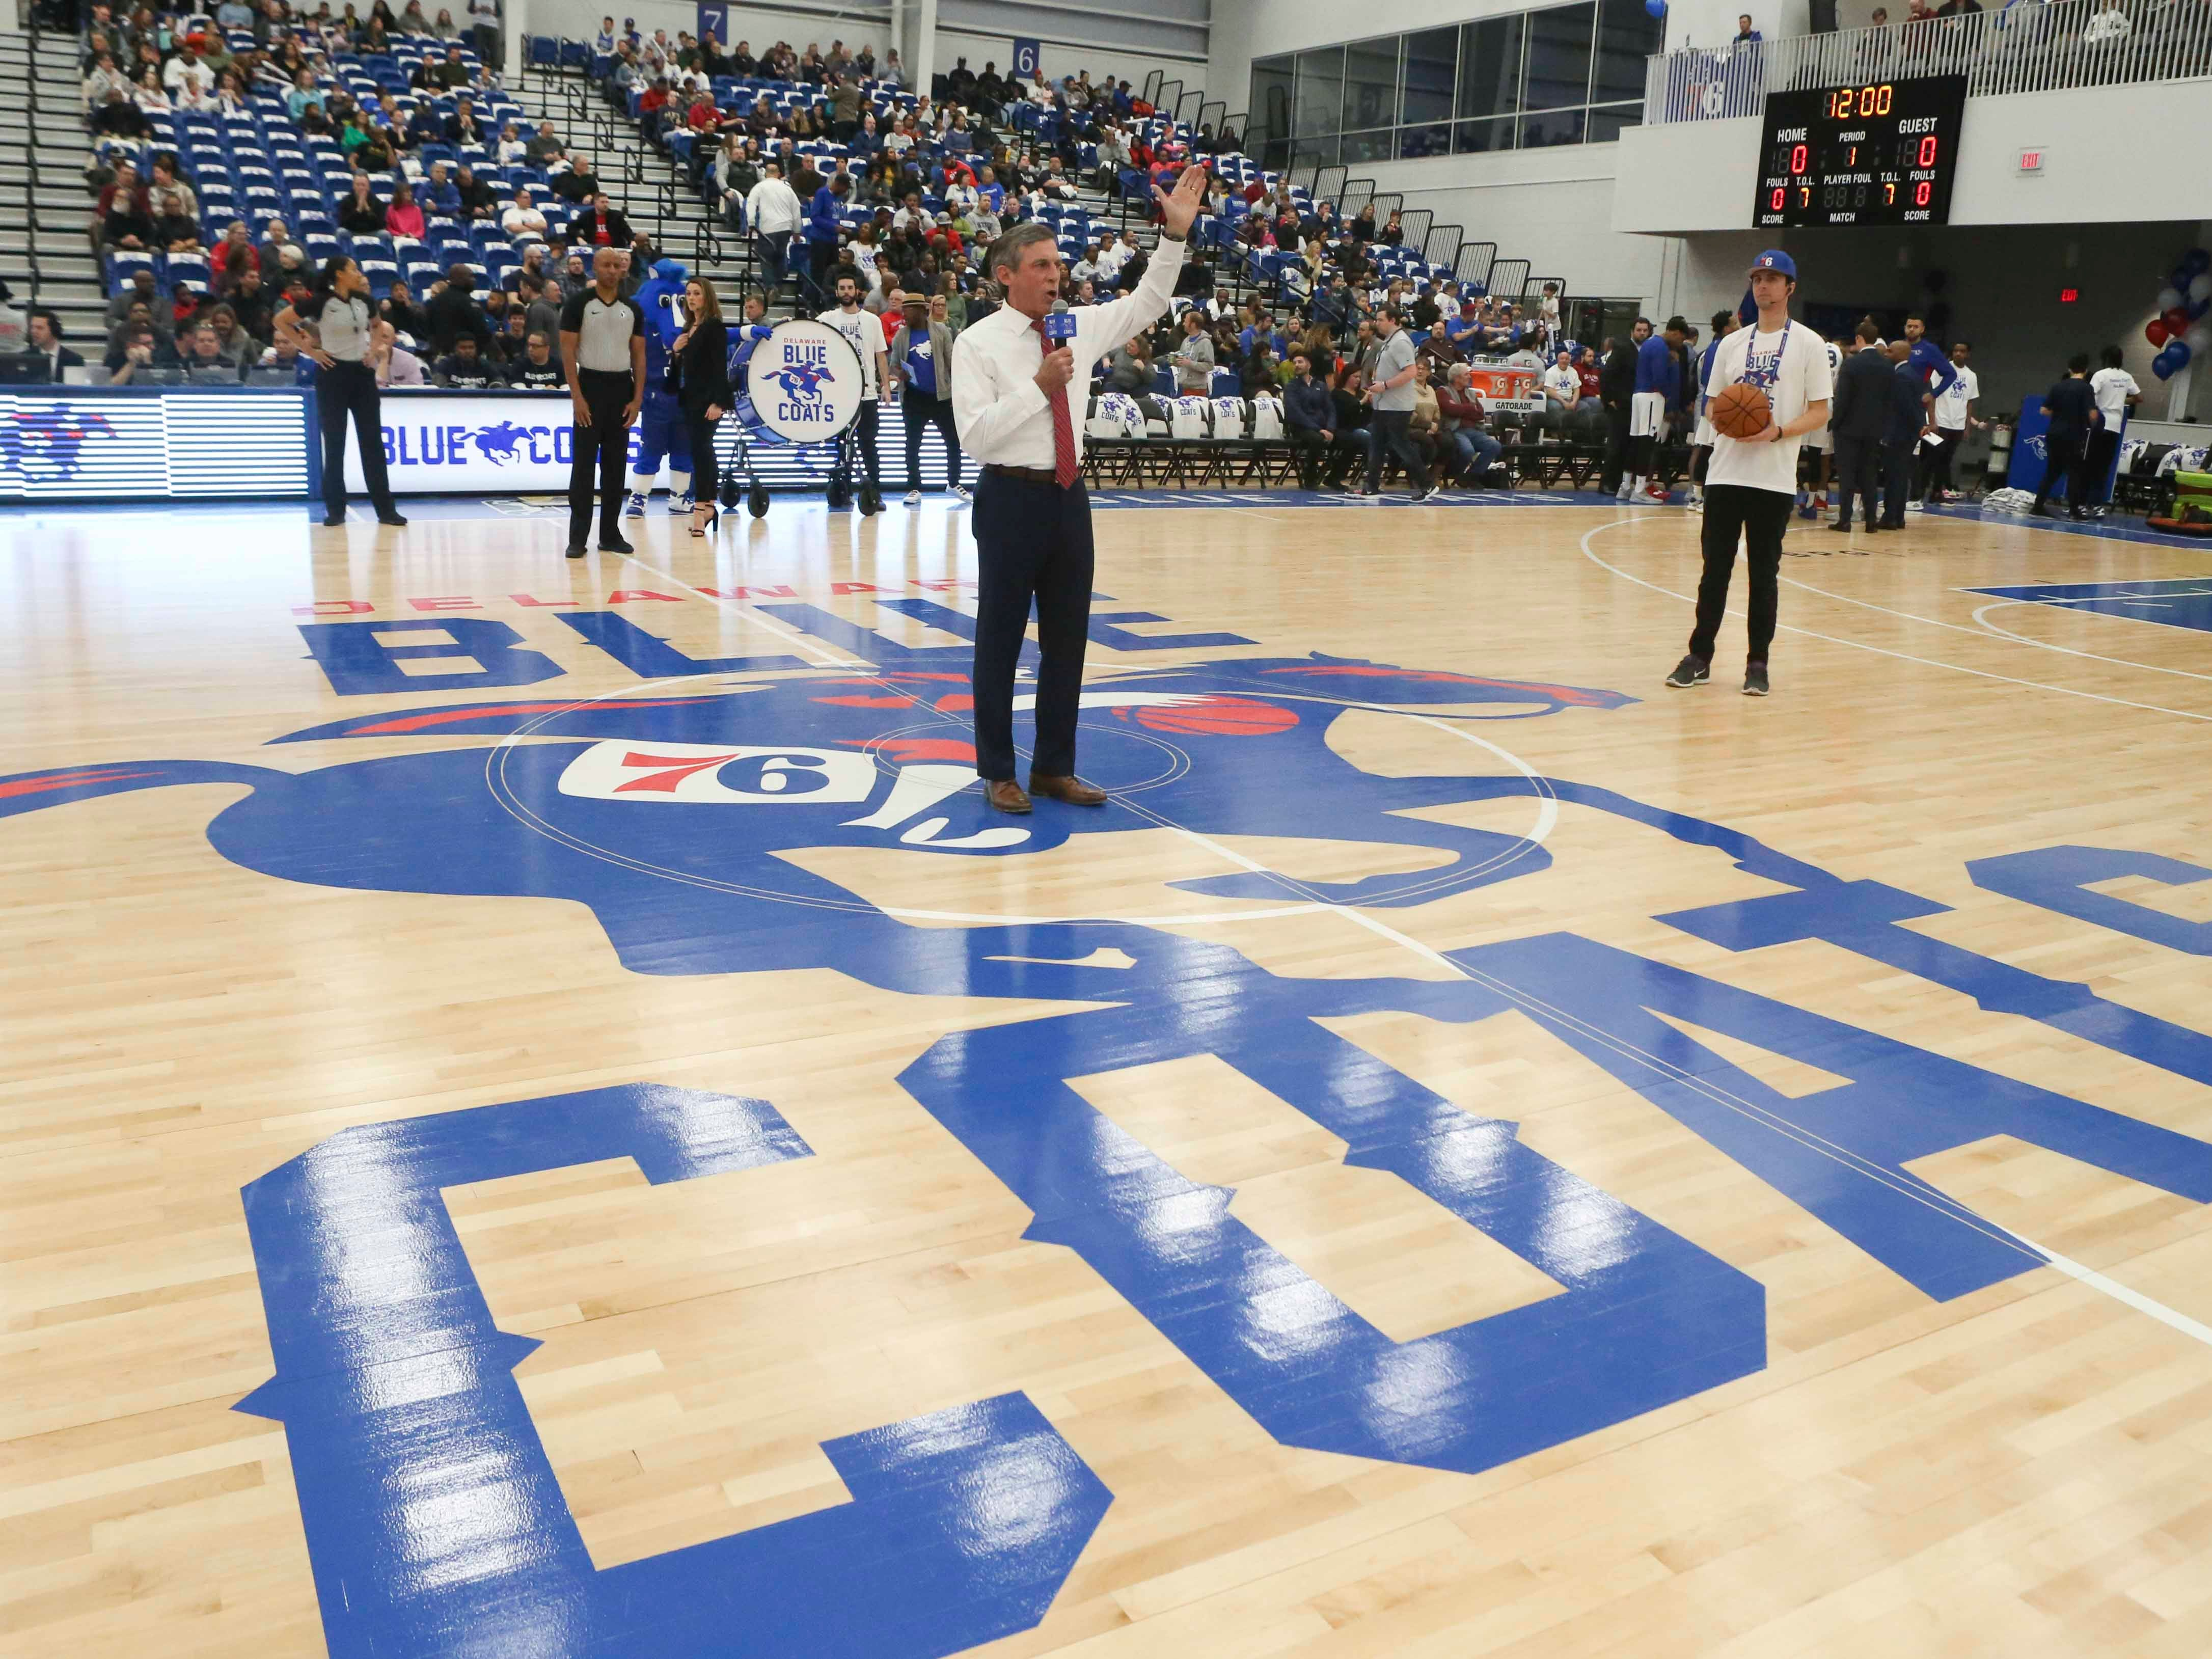 Delaware Governor John Carney helps open the 76ers Field House as the Delaware Blue Coats inaugurate the multi-purpose building in Wilmington Wednesday.